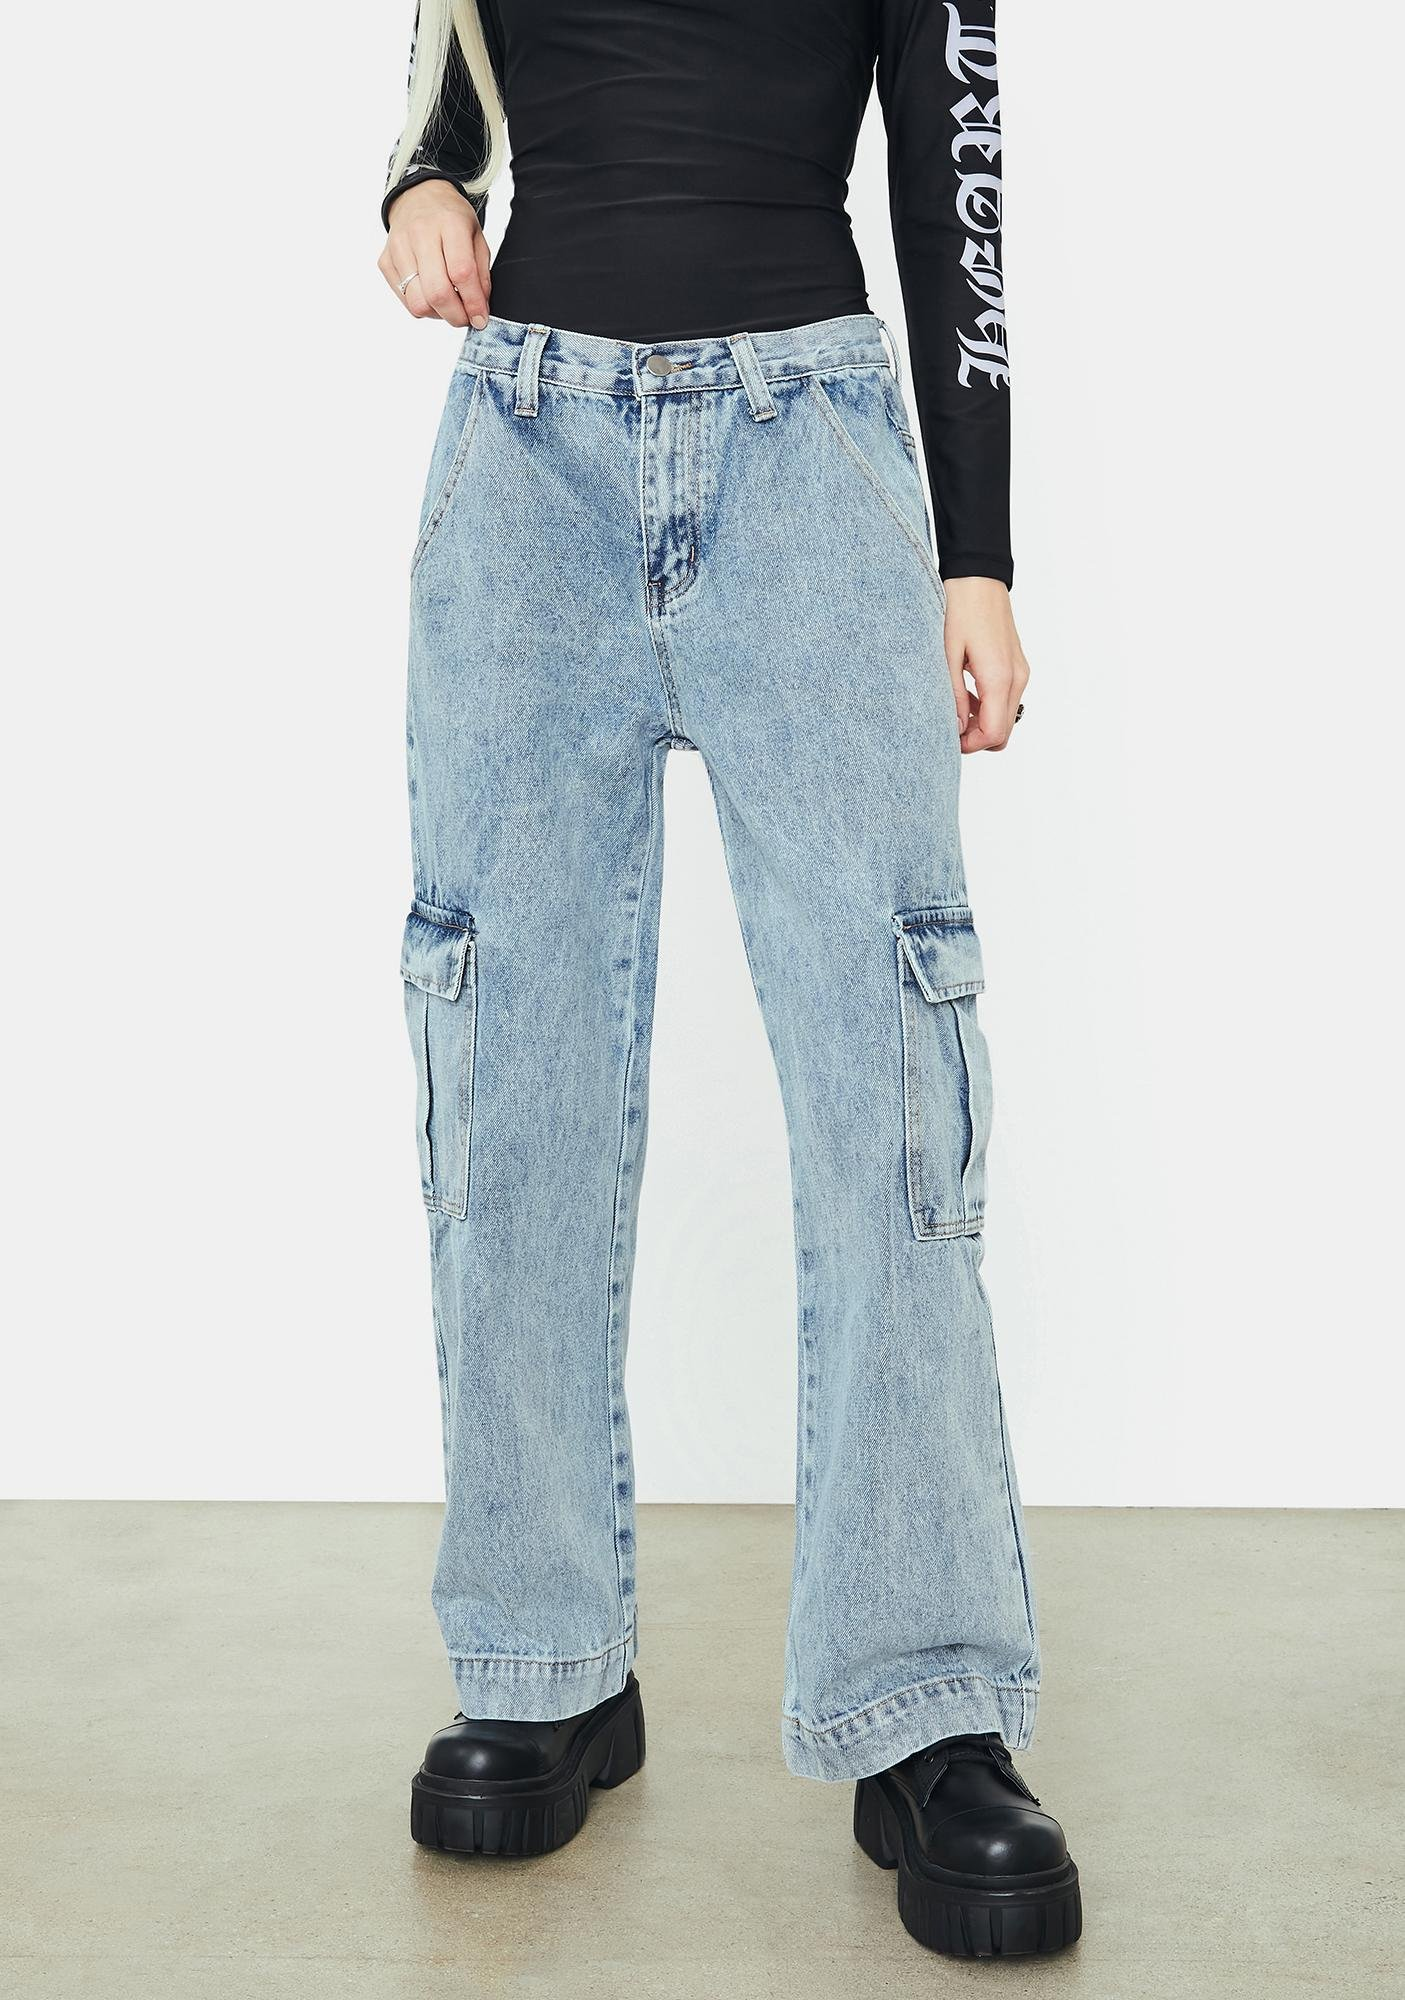 Meet In The Middle Denim Cargo Pants